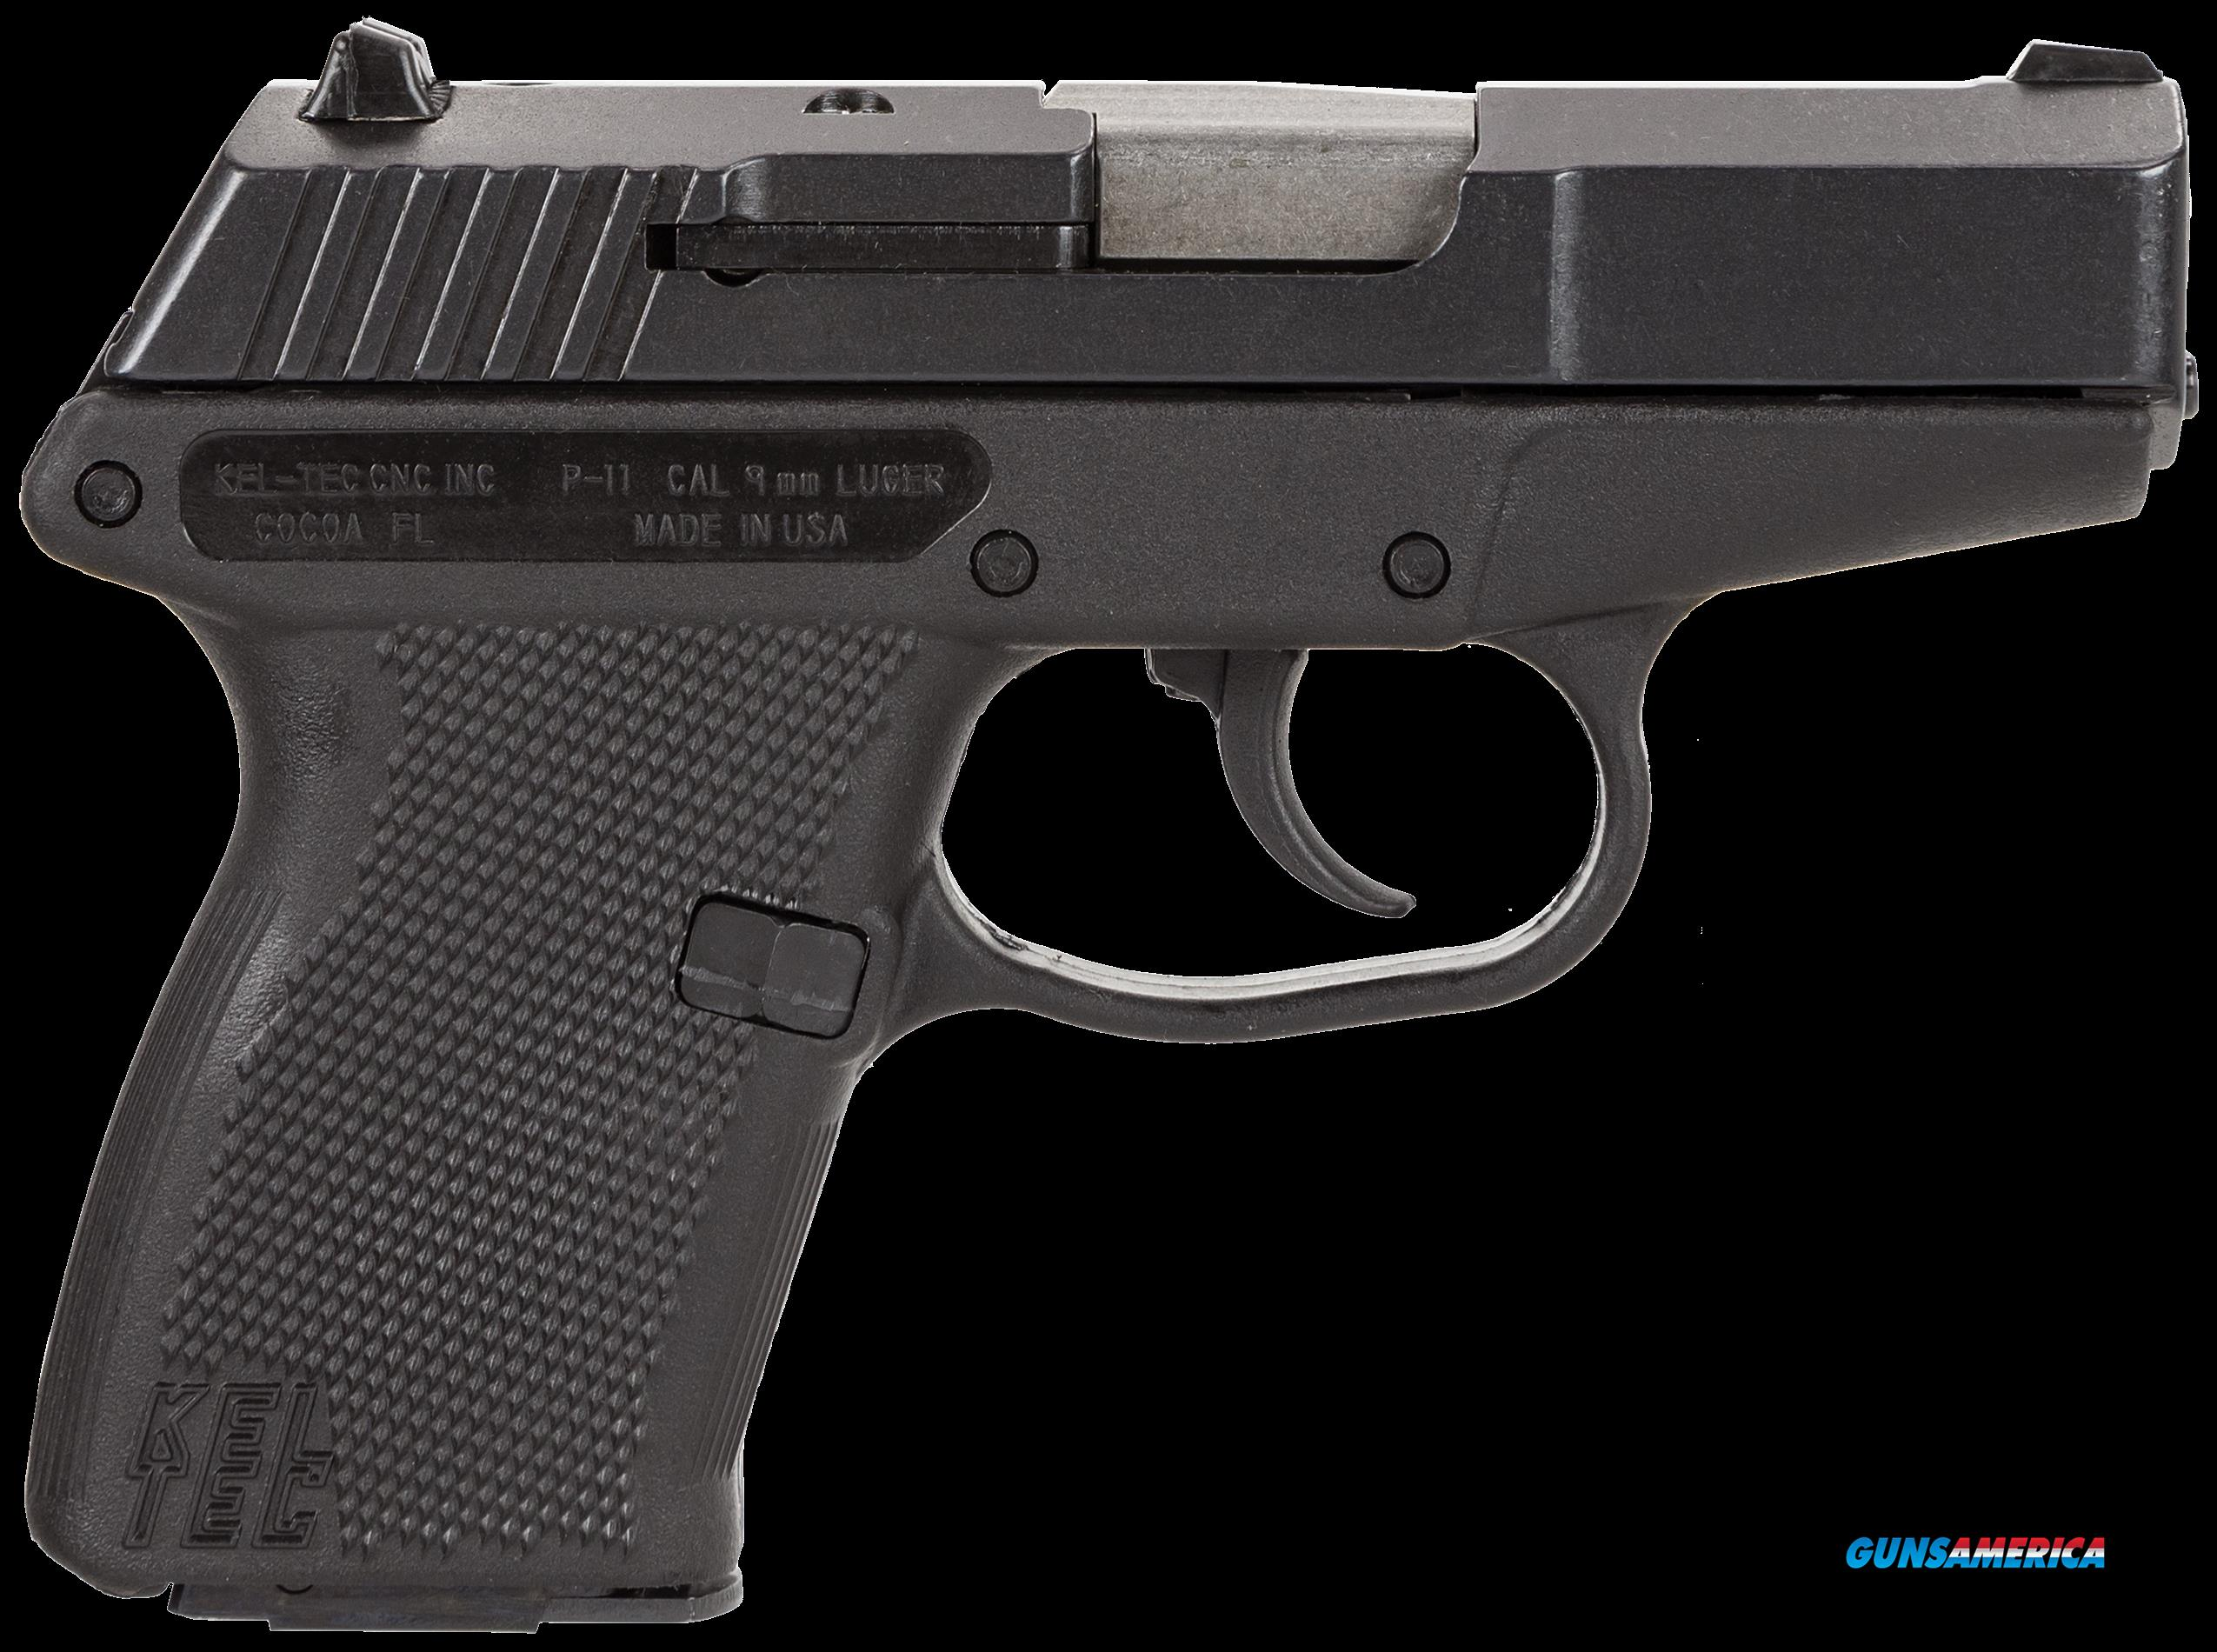 "Kel-Tec P11BBLK P-11 9mm 3.1"" 10+1 Black Polymer Grip Blued Finish  Guns > Pistols > Kel-Tec Pistols > Pocket Pistol Type"